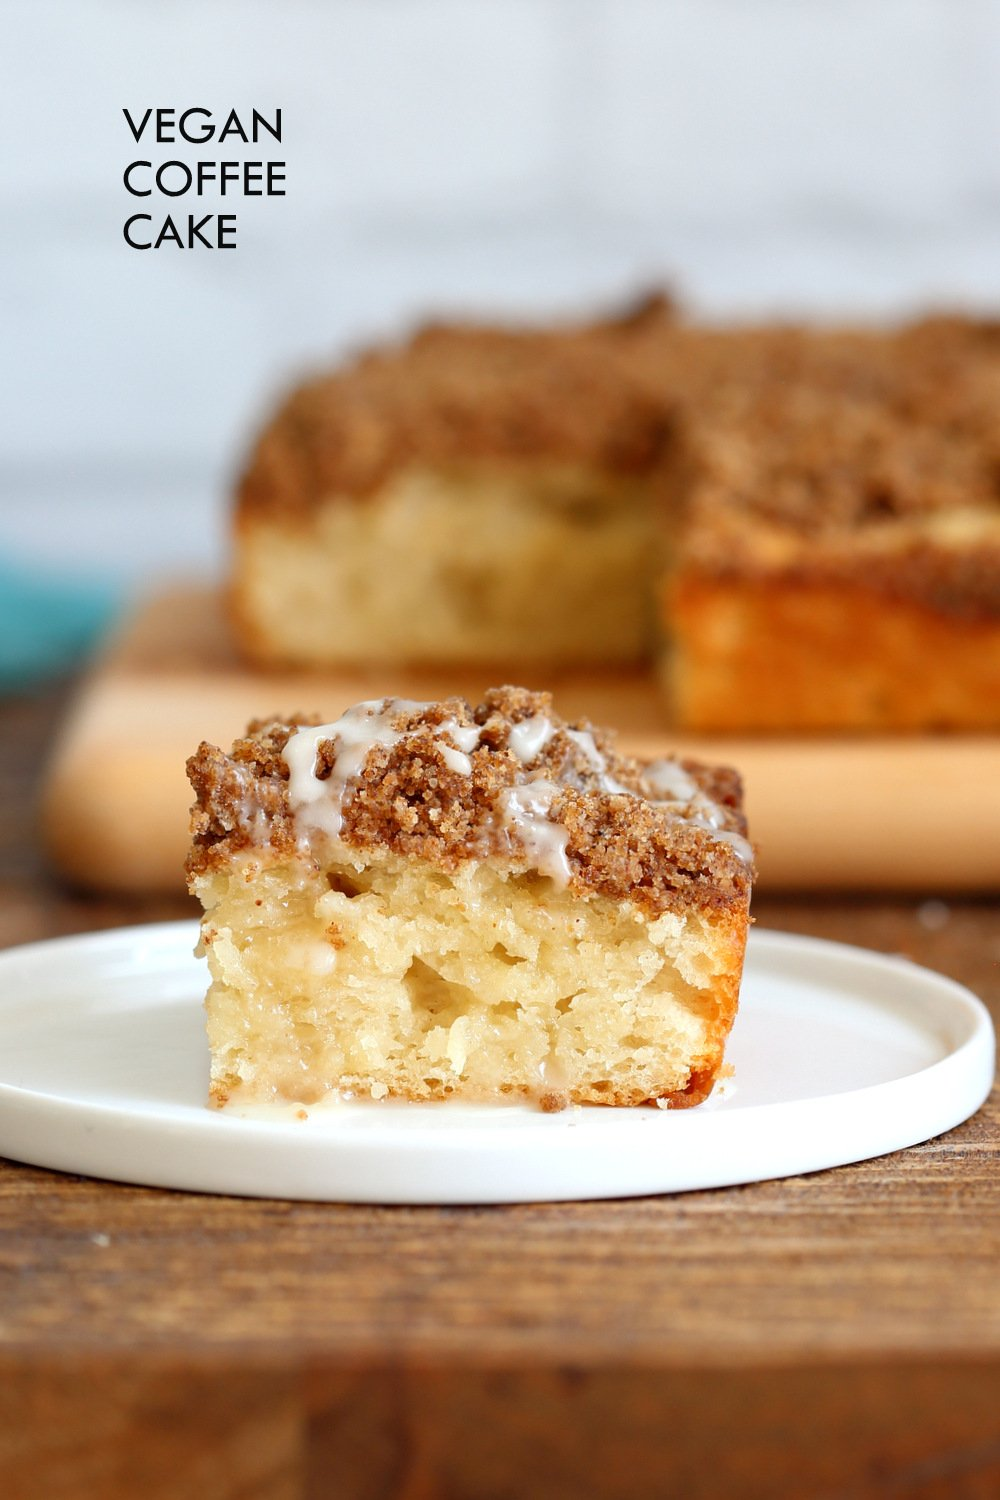 Vegan Coffee Cake Recipe ? Cinnamon Streusel Cake